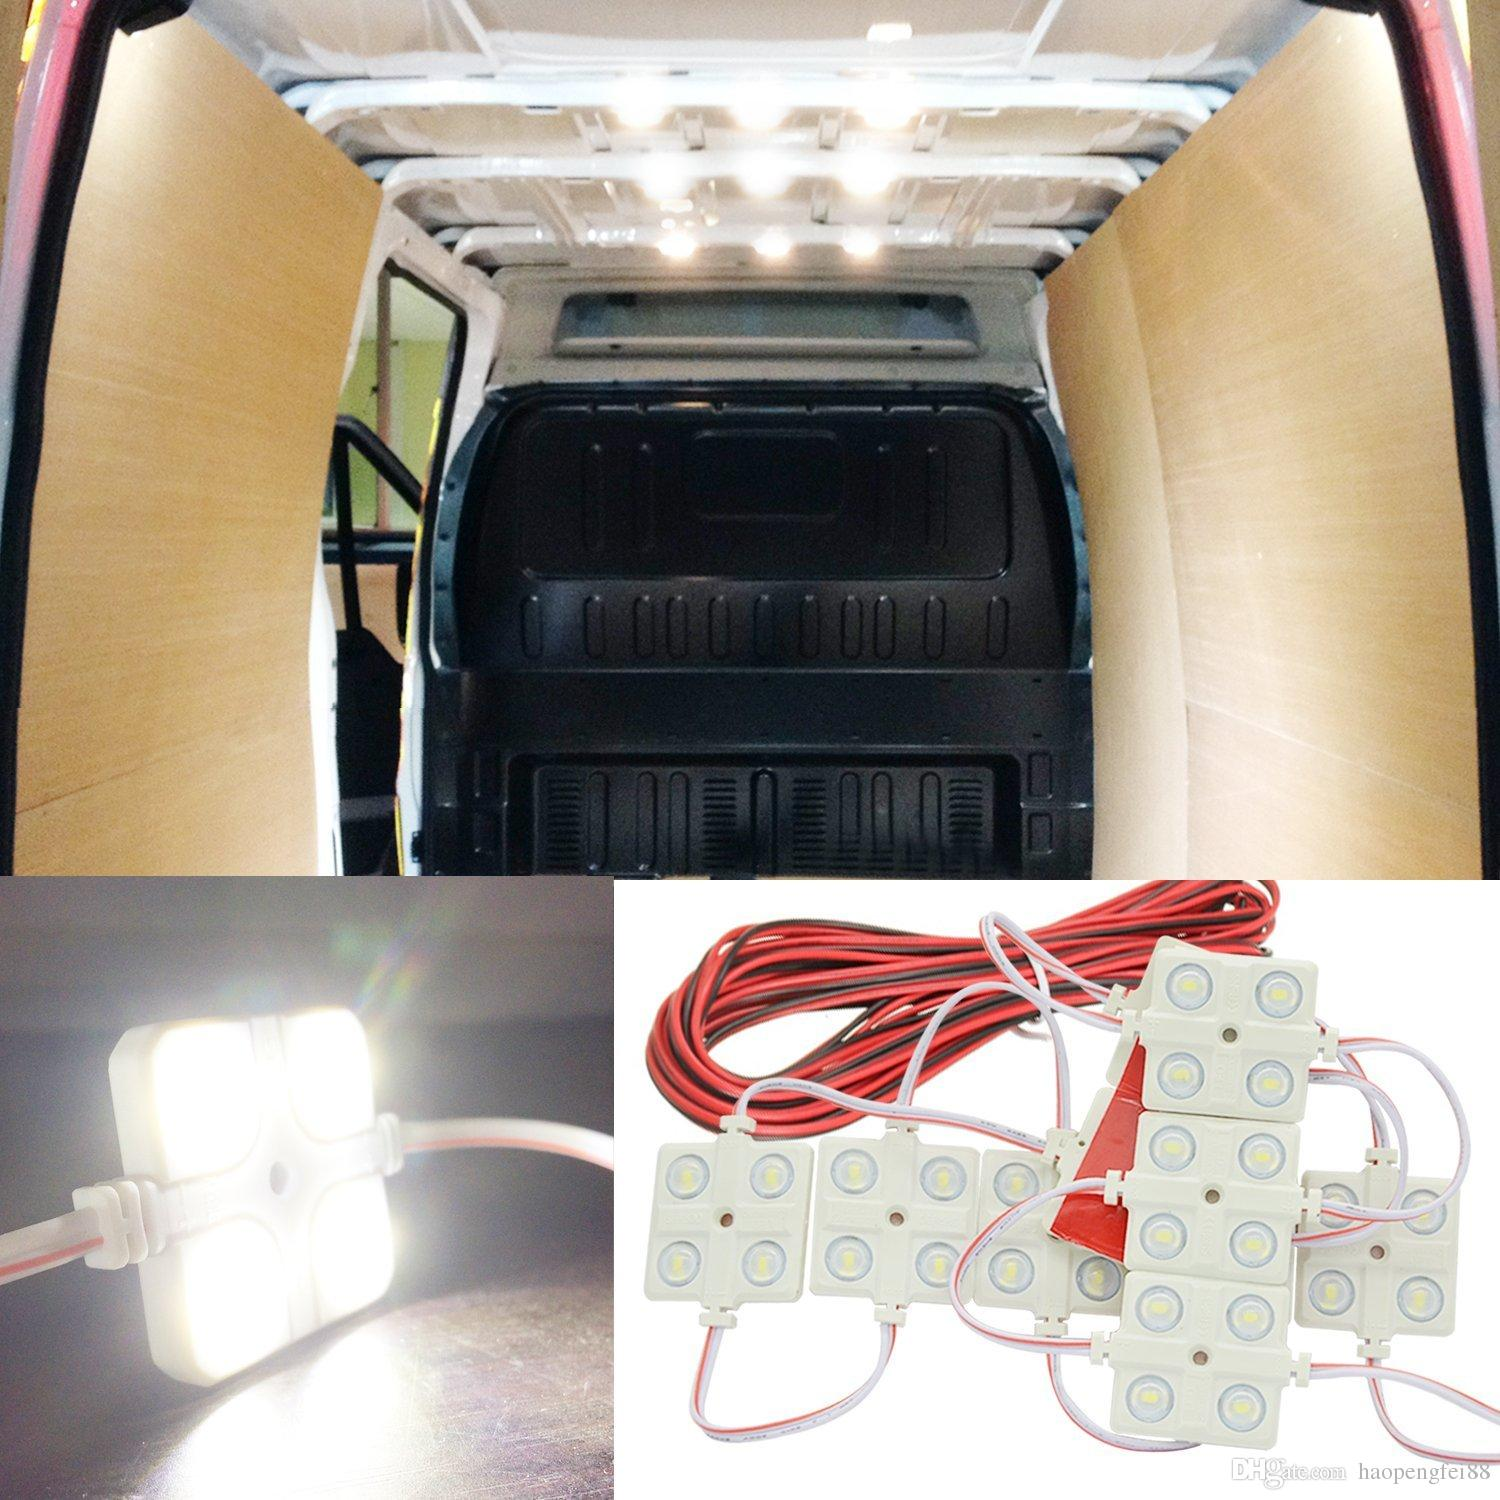 discount 12v 10x4 led car interior lighting lamp waterproof inside roof light kit for rv van. Black Bedroom Furniture Sets. Home Design Ideas